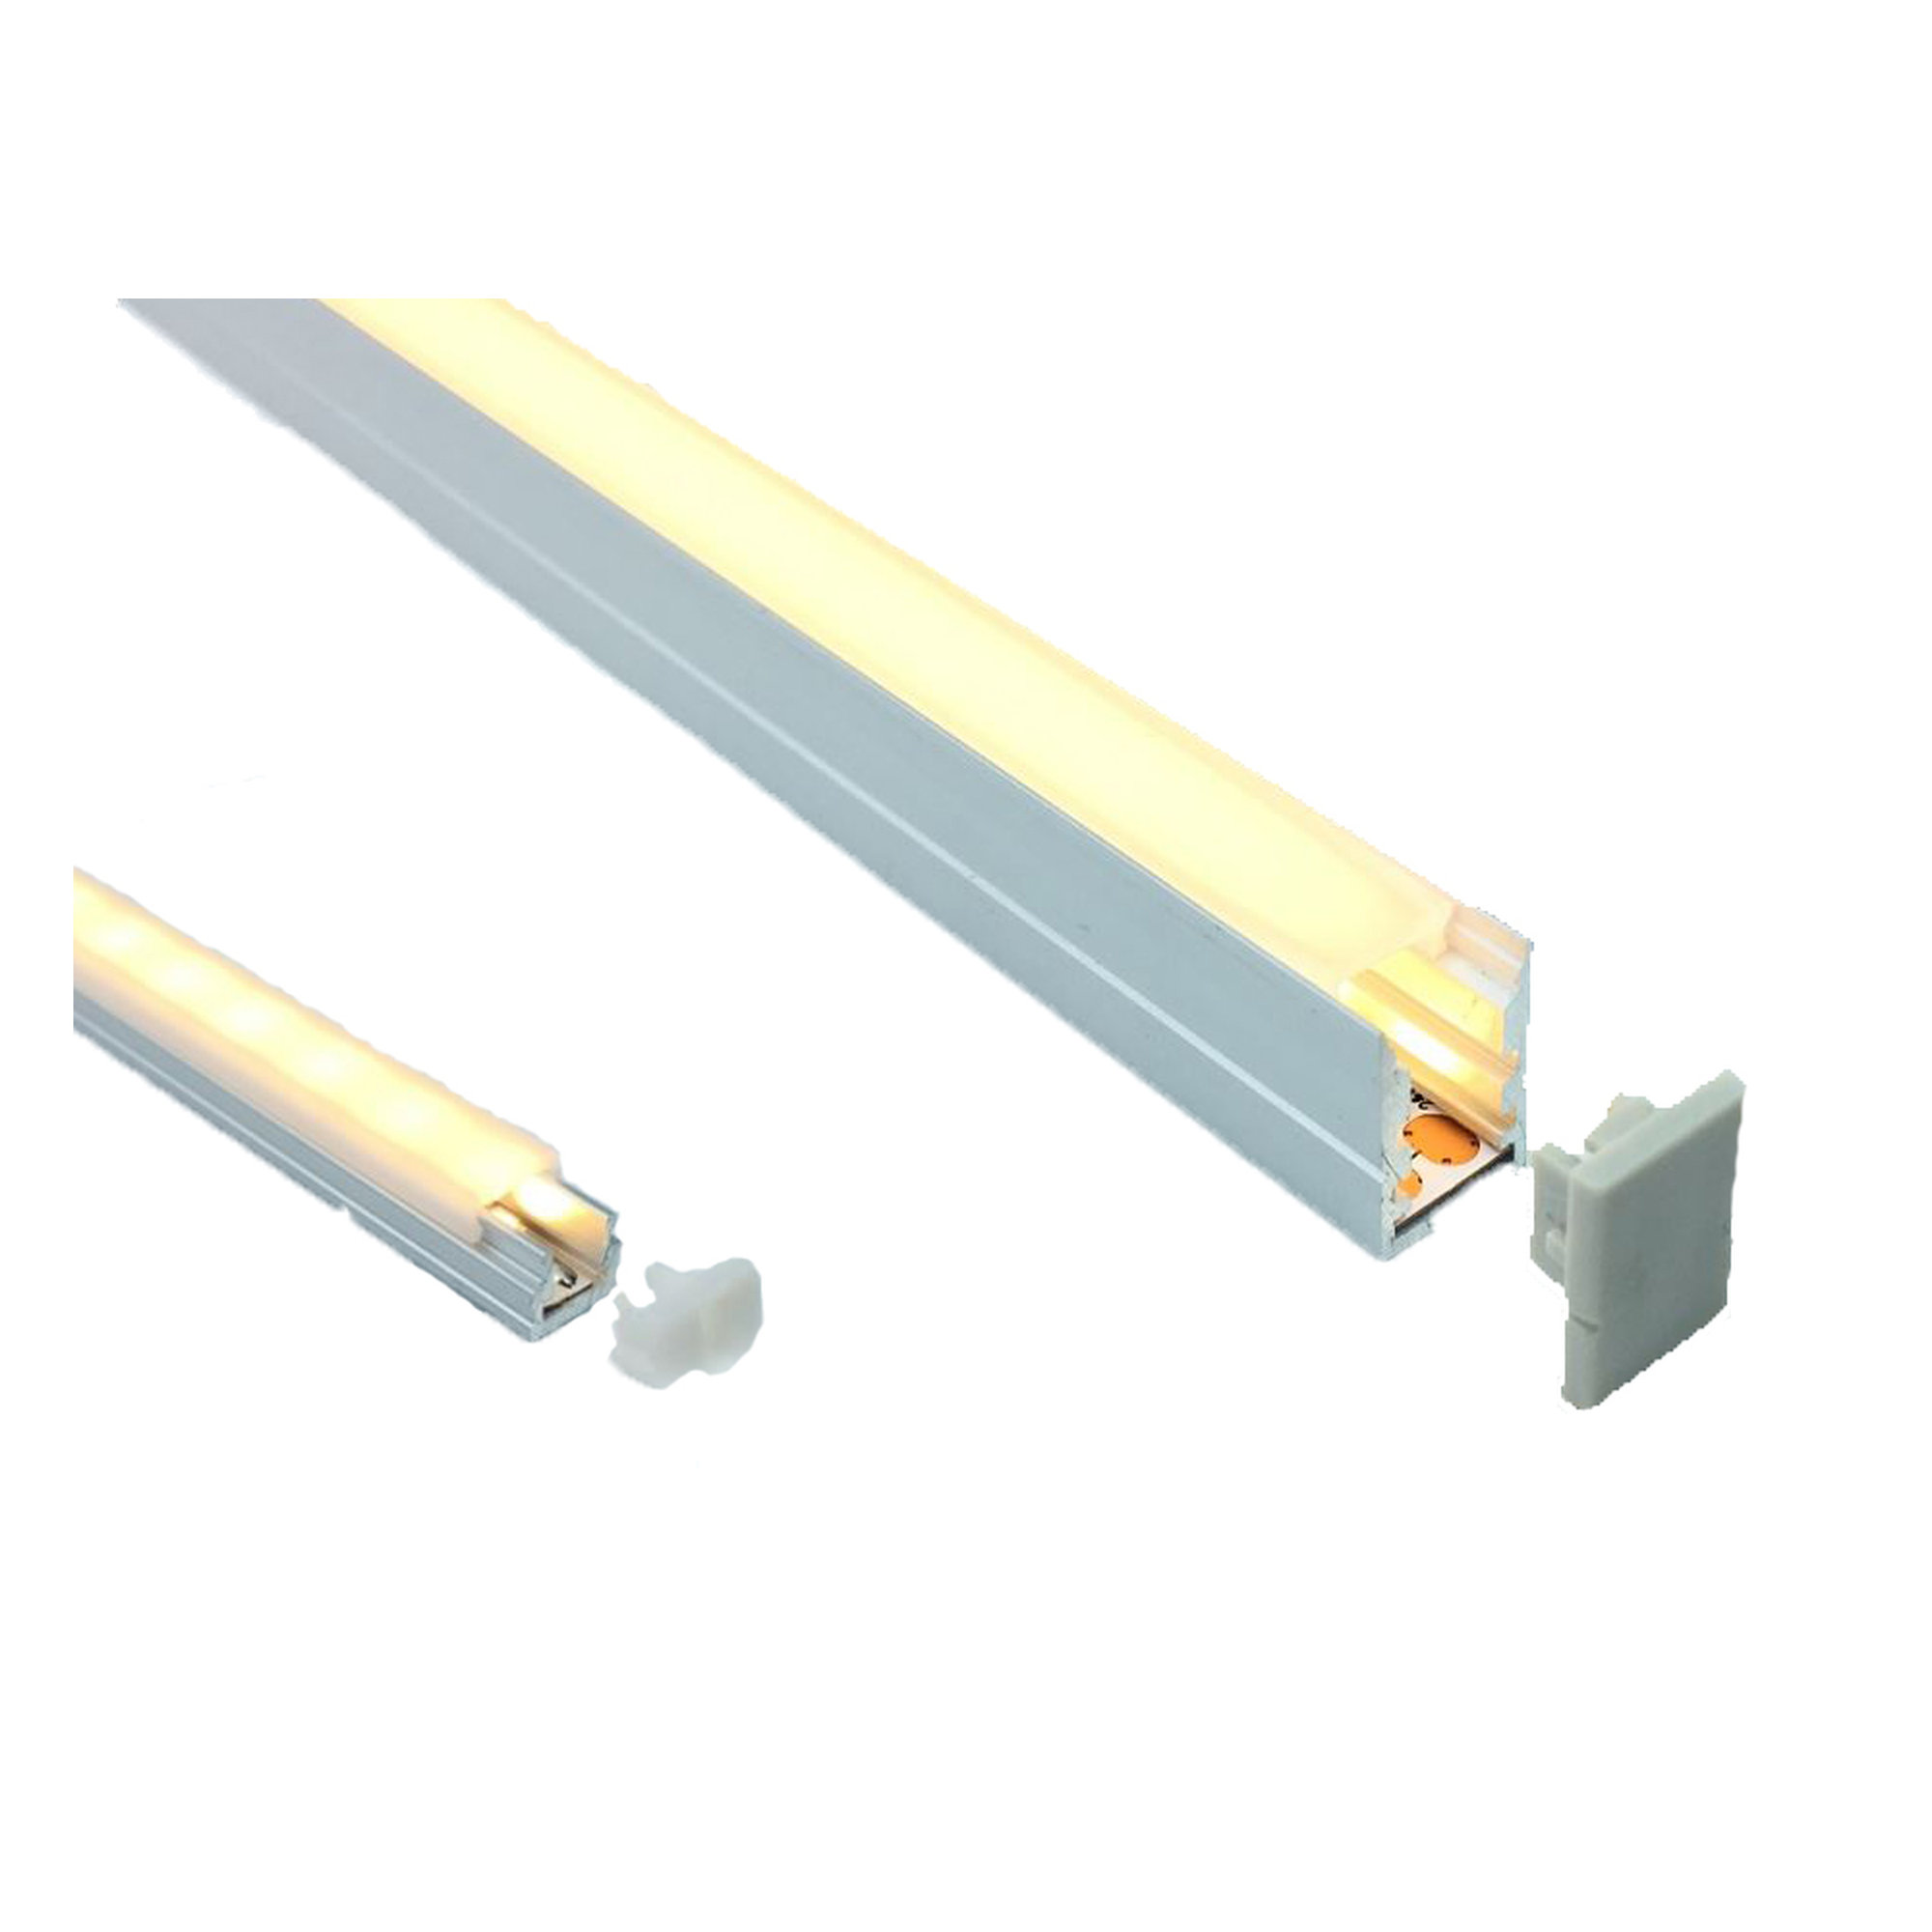 LED Profile 10 x 15mm Opal Diffuser